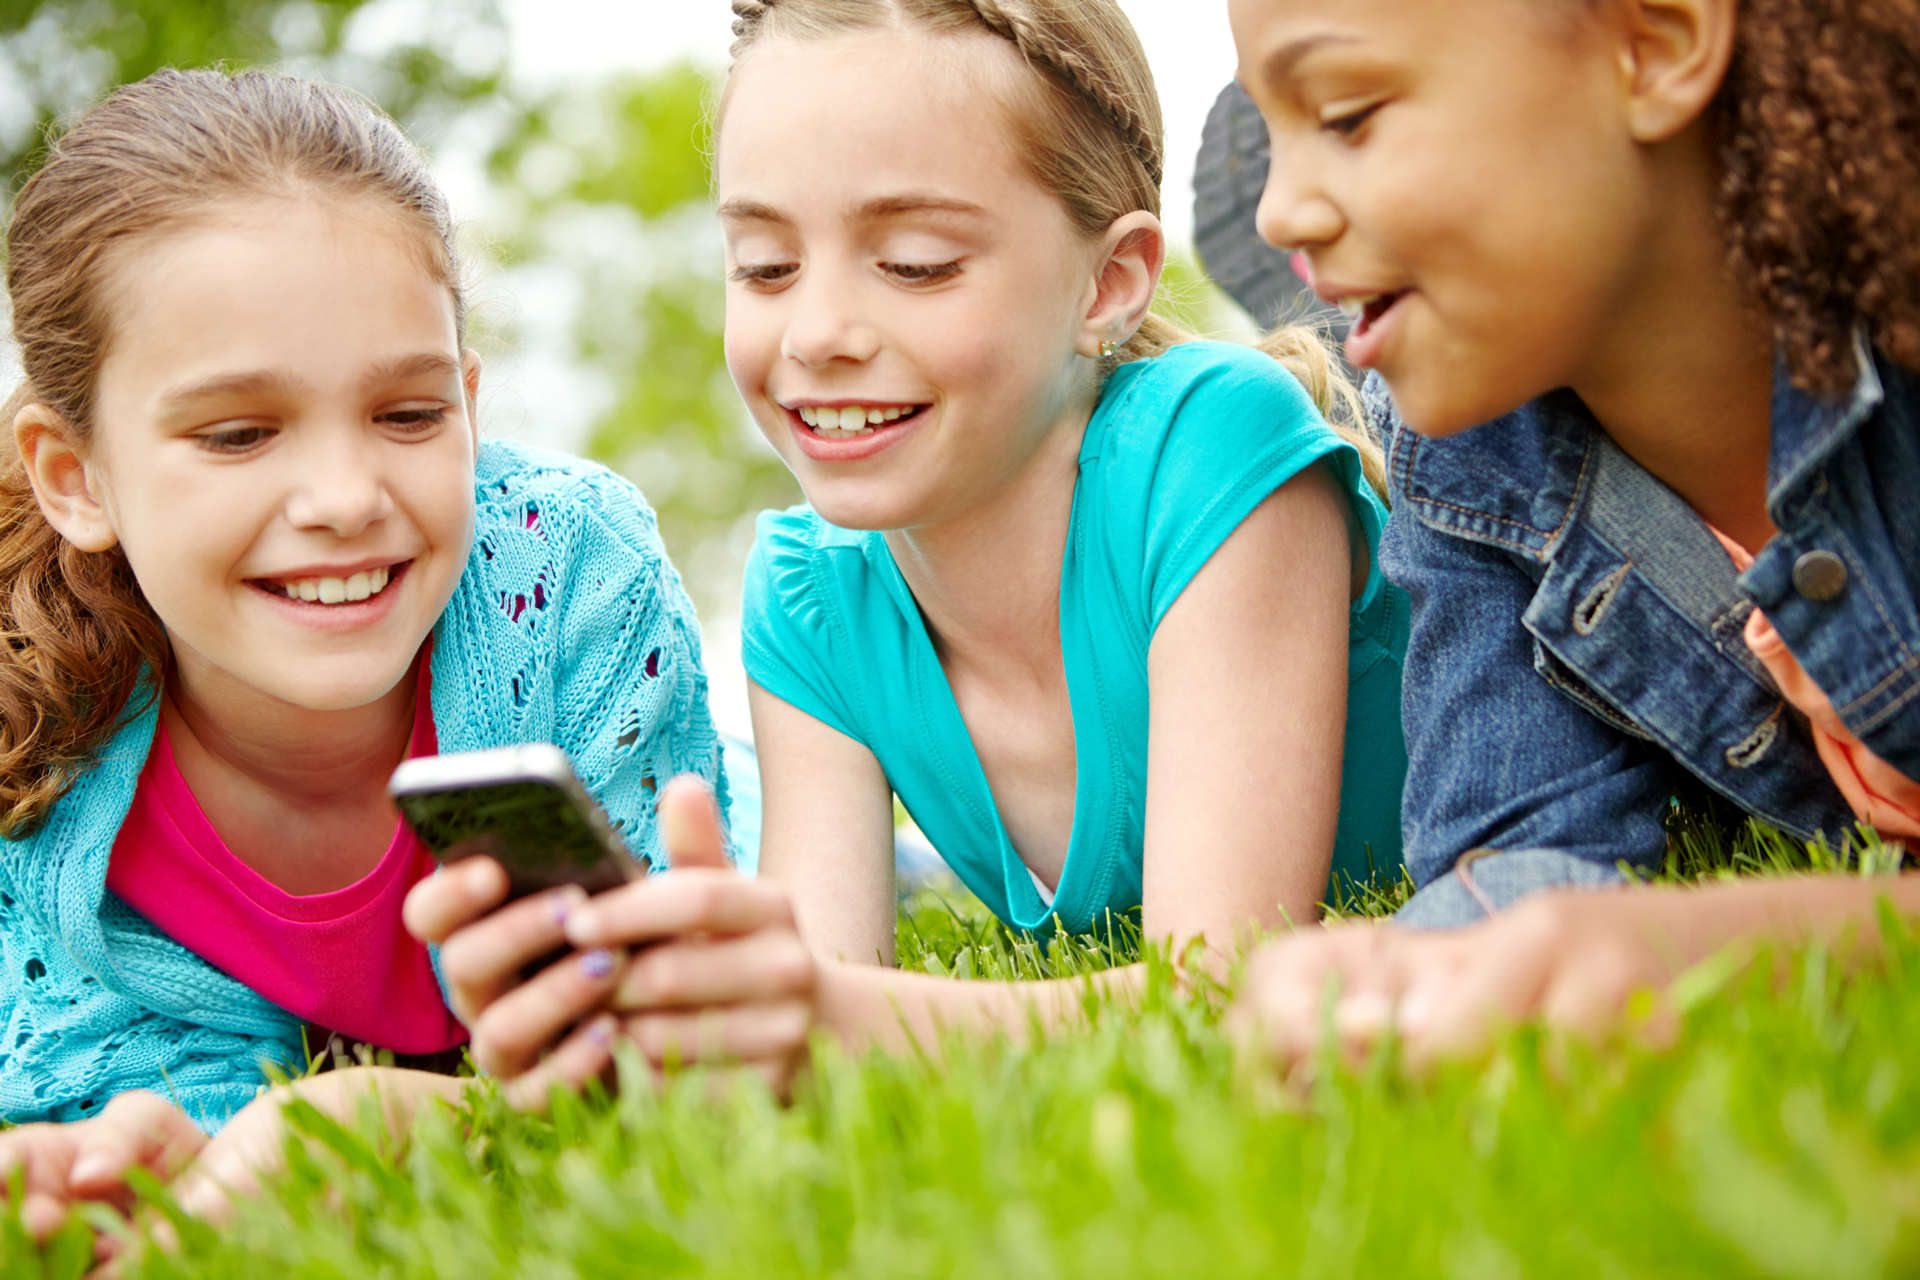 Adolescent Development in an Age of Social Media